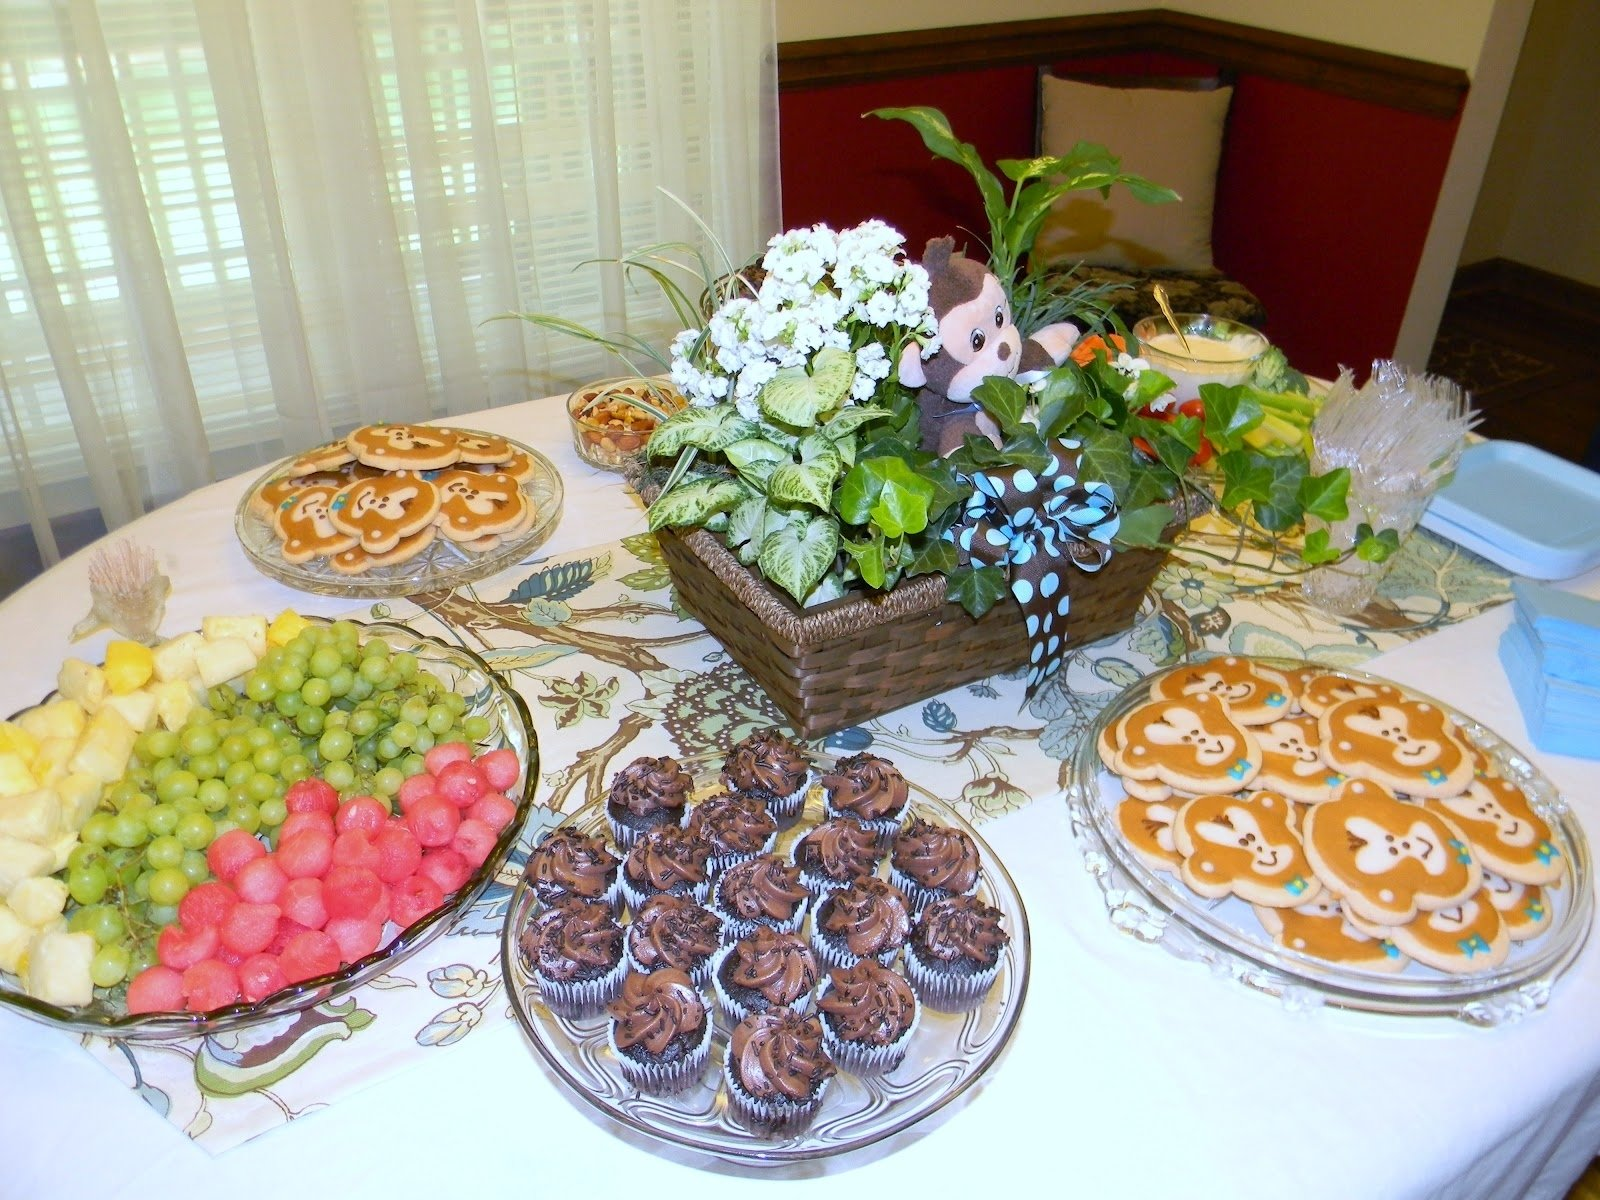 10 Nice Food Ideas For Baby Showers baby shower food ideas baby shower foods on a budget 4 2020